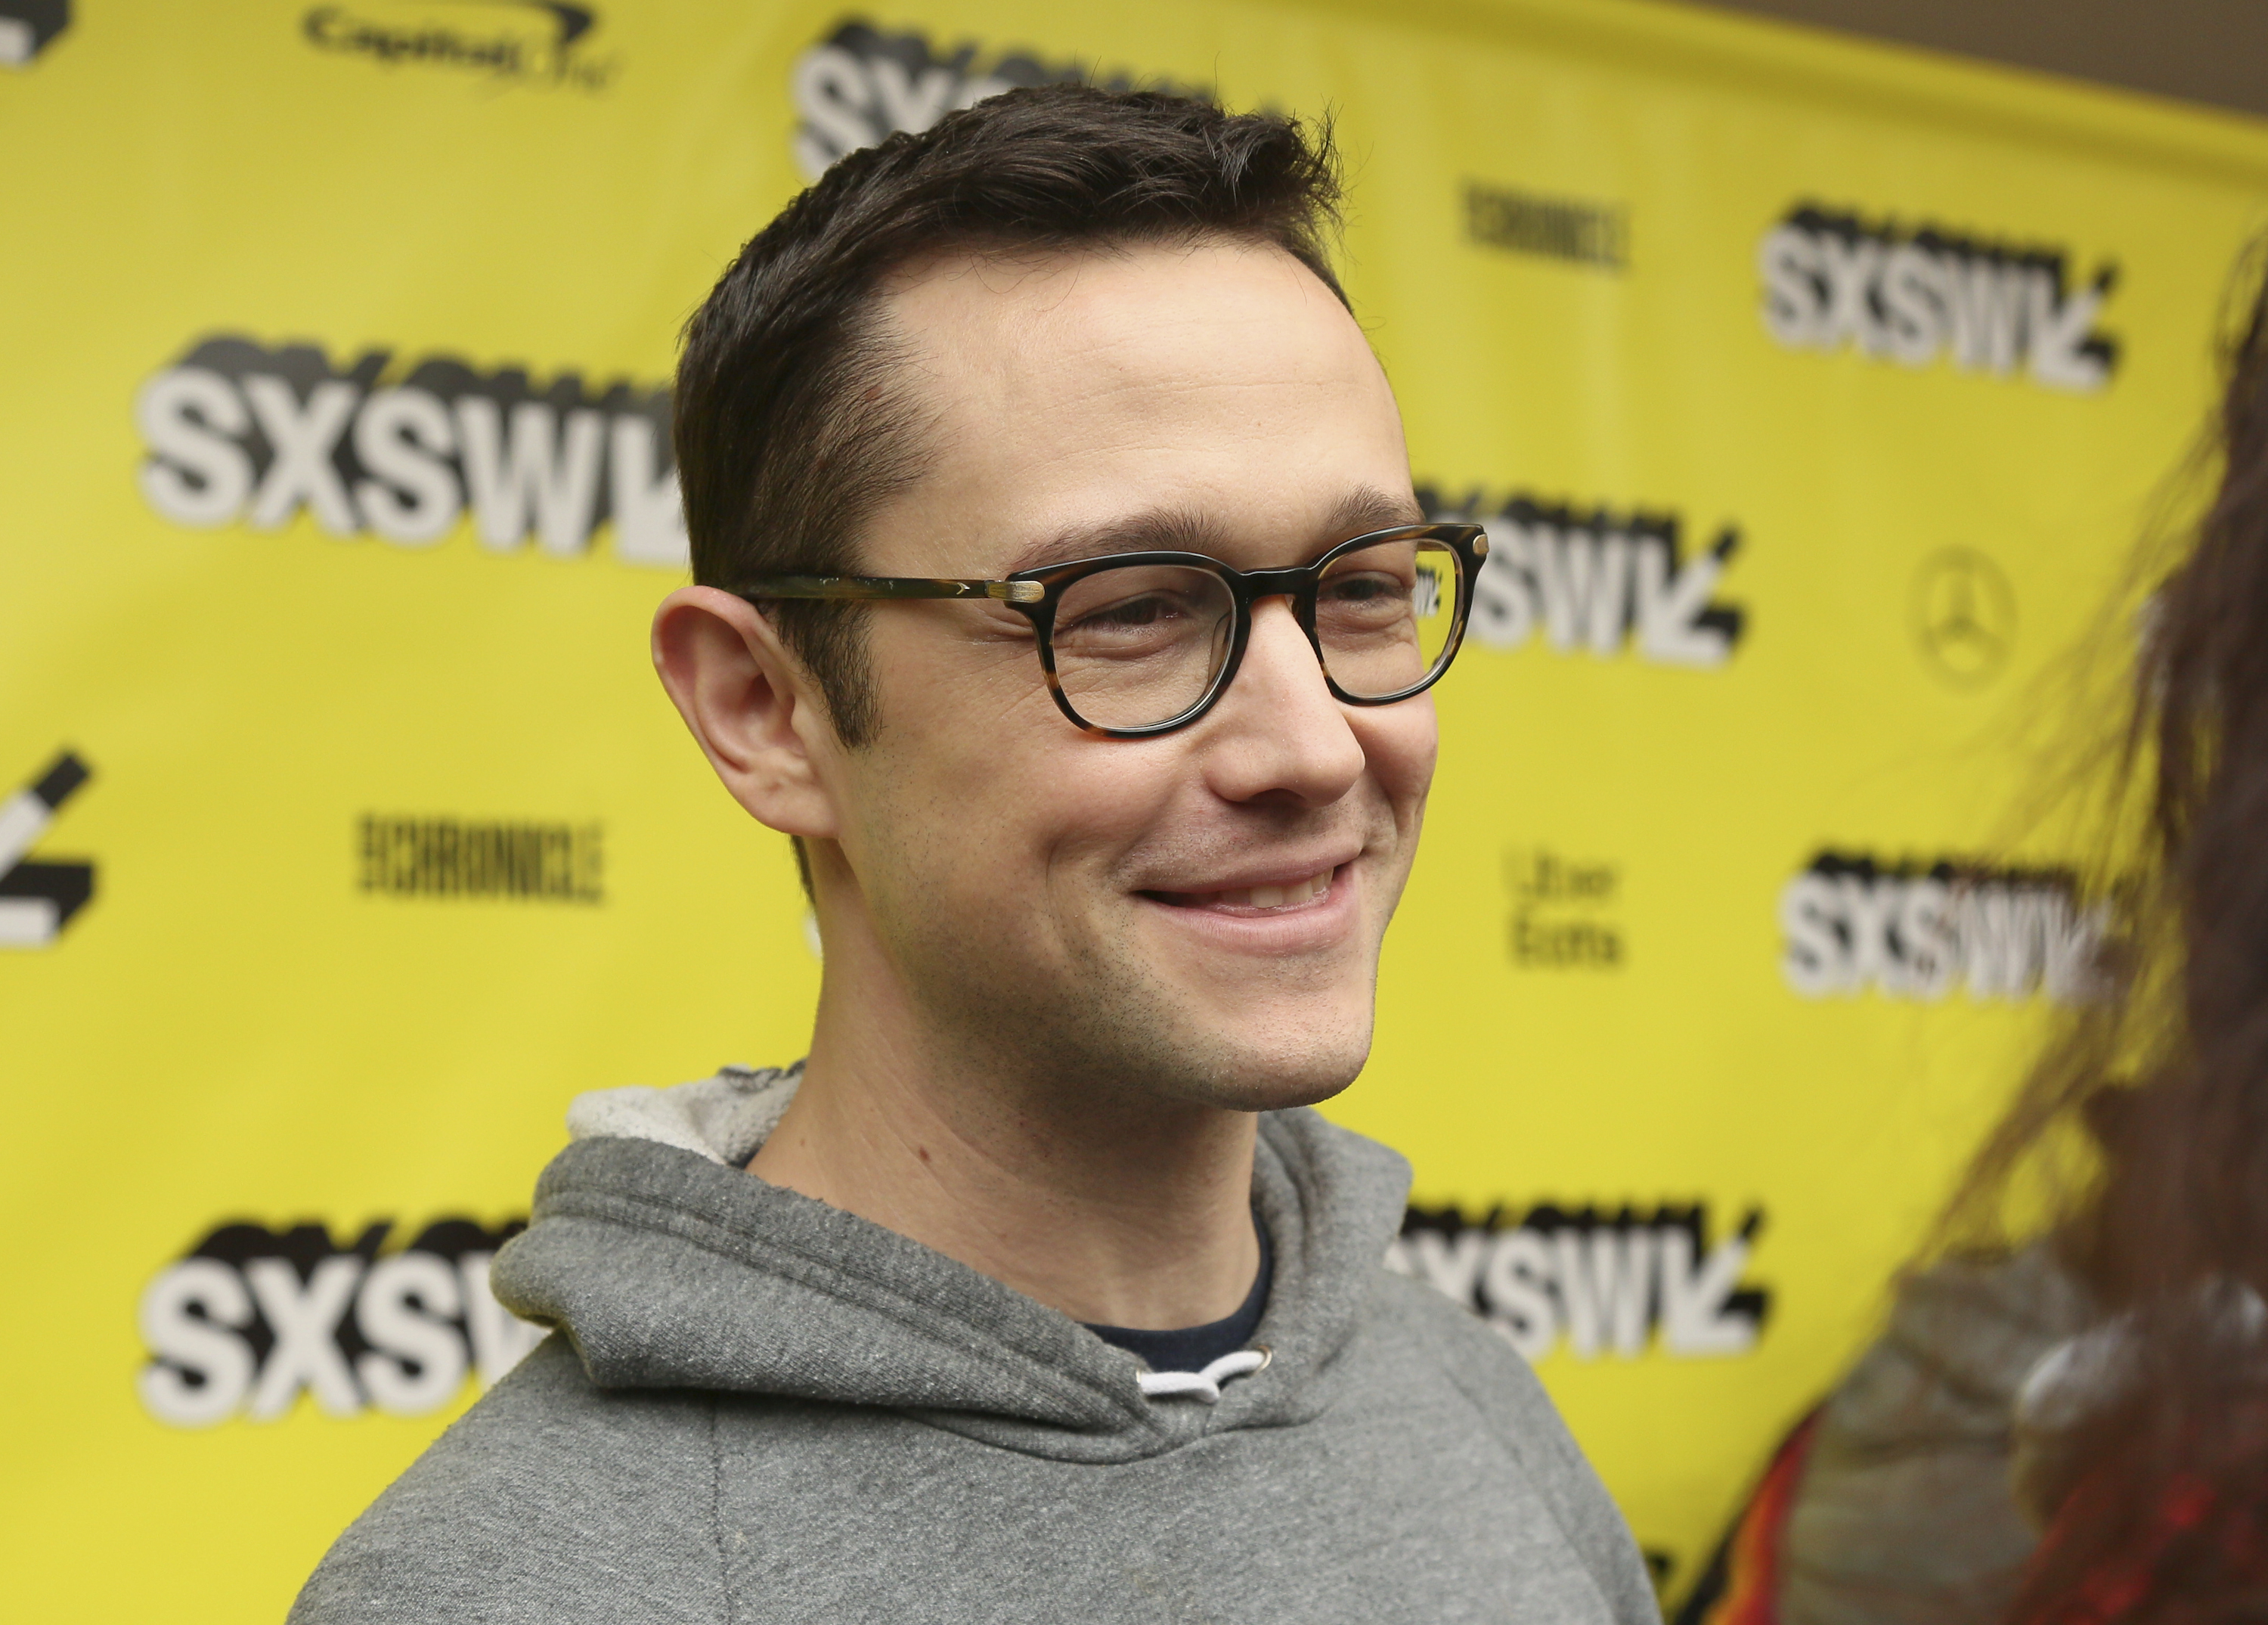 """Joseph Gordon-Levitt arrives for the world premiere of """"Band Together with Logic"""" at the Paramount Theatre during the South by Southwest Film Festival on Friday, March 15, 2019, in Austin, Texas."""